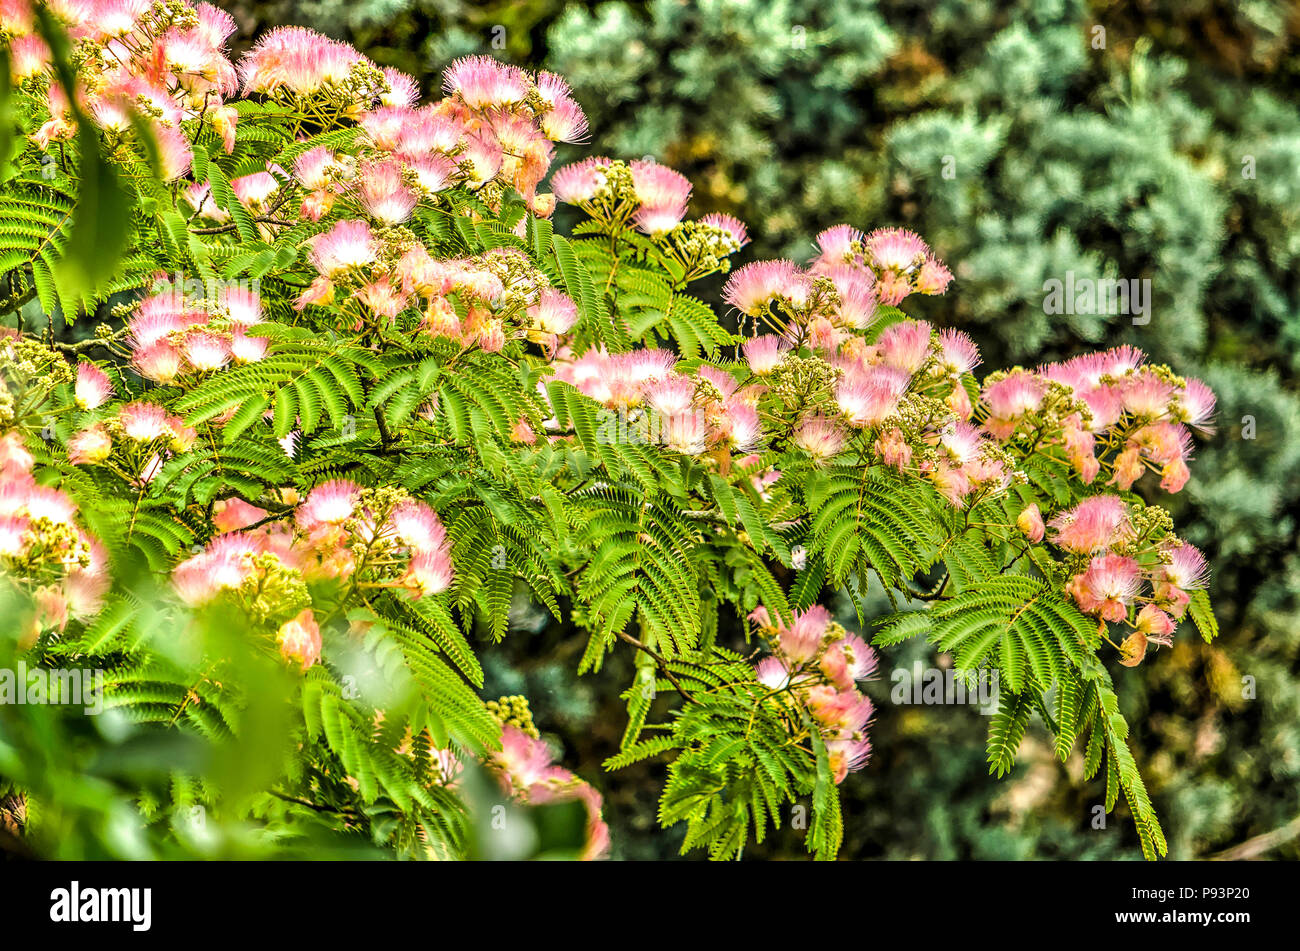 Several branches of an albizia julibrissin or persian silkk tree several branches of an albizia julibrissin or persian silkk tree with its characteristic pink fluffy flowers mightylinksfo